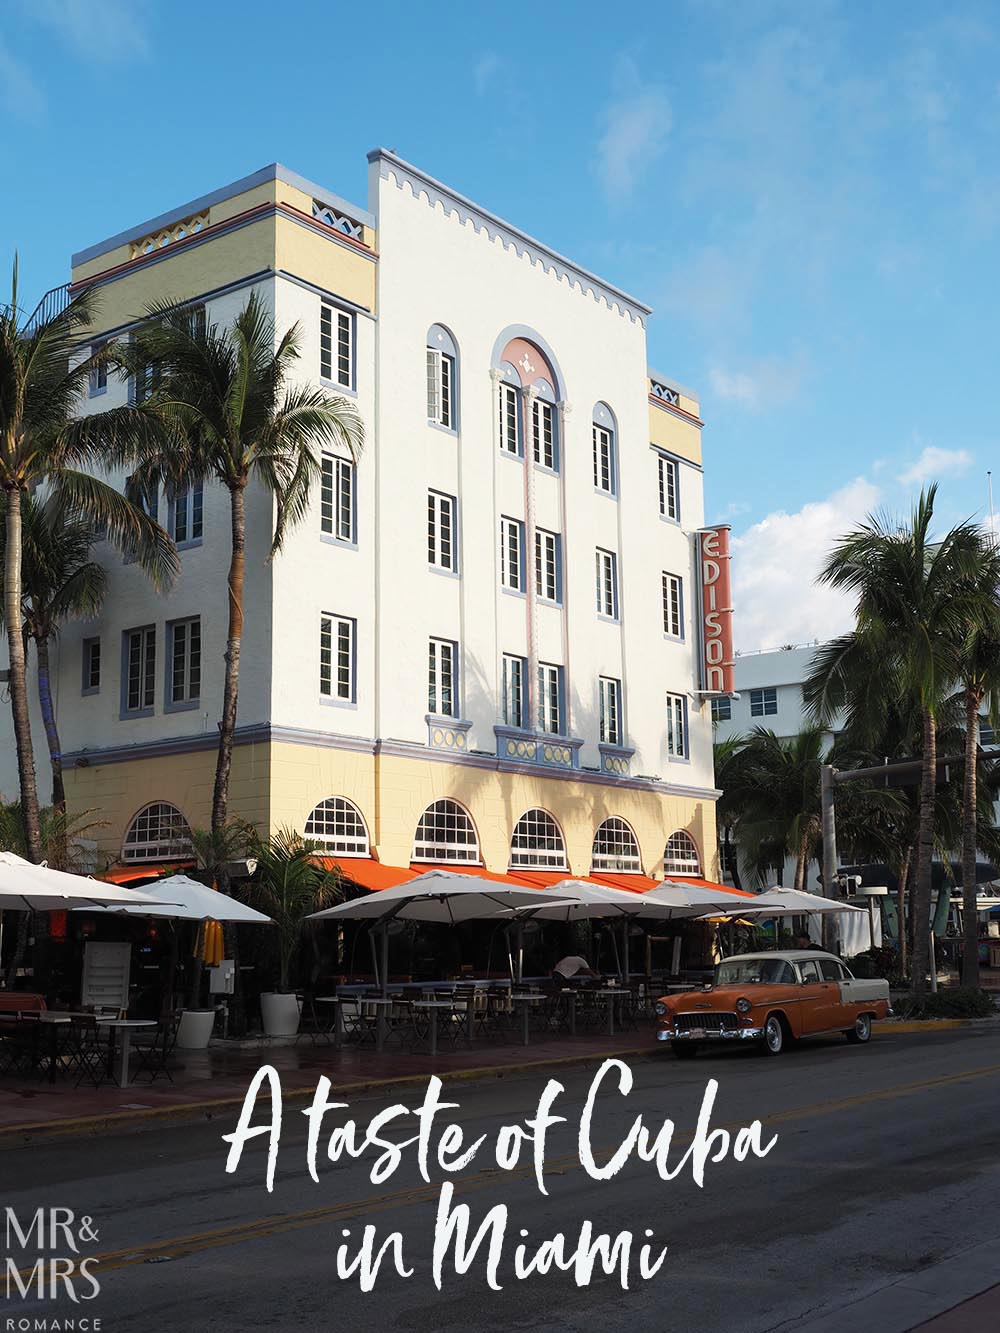 What's Little Havana, Miami like? A little taste of Cuba